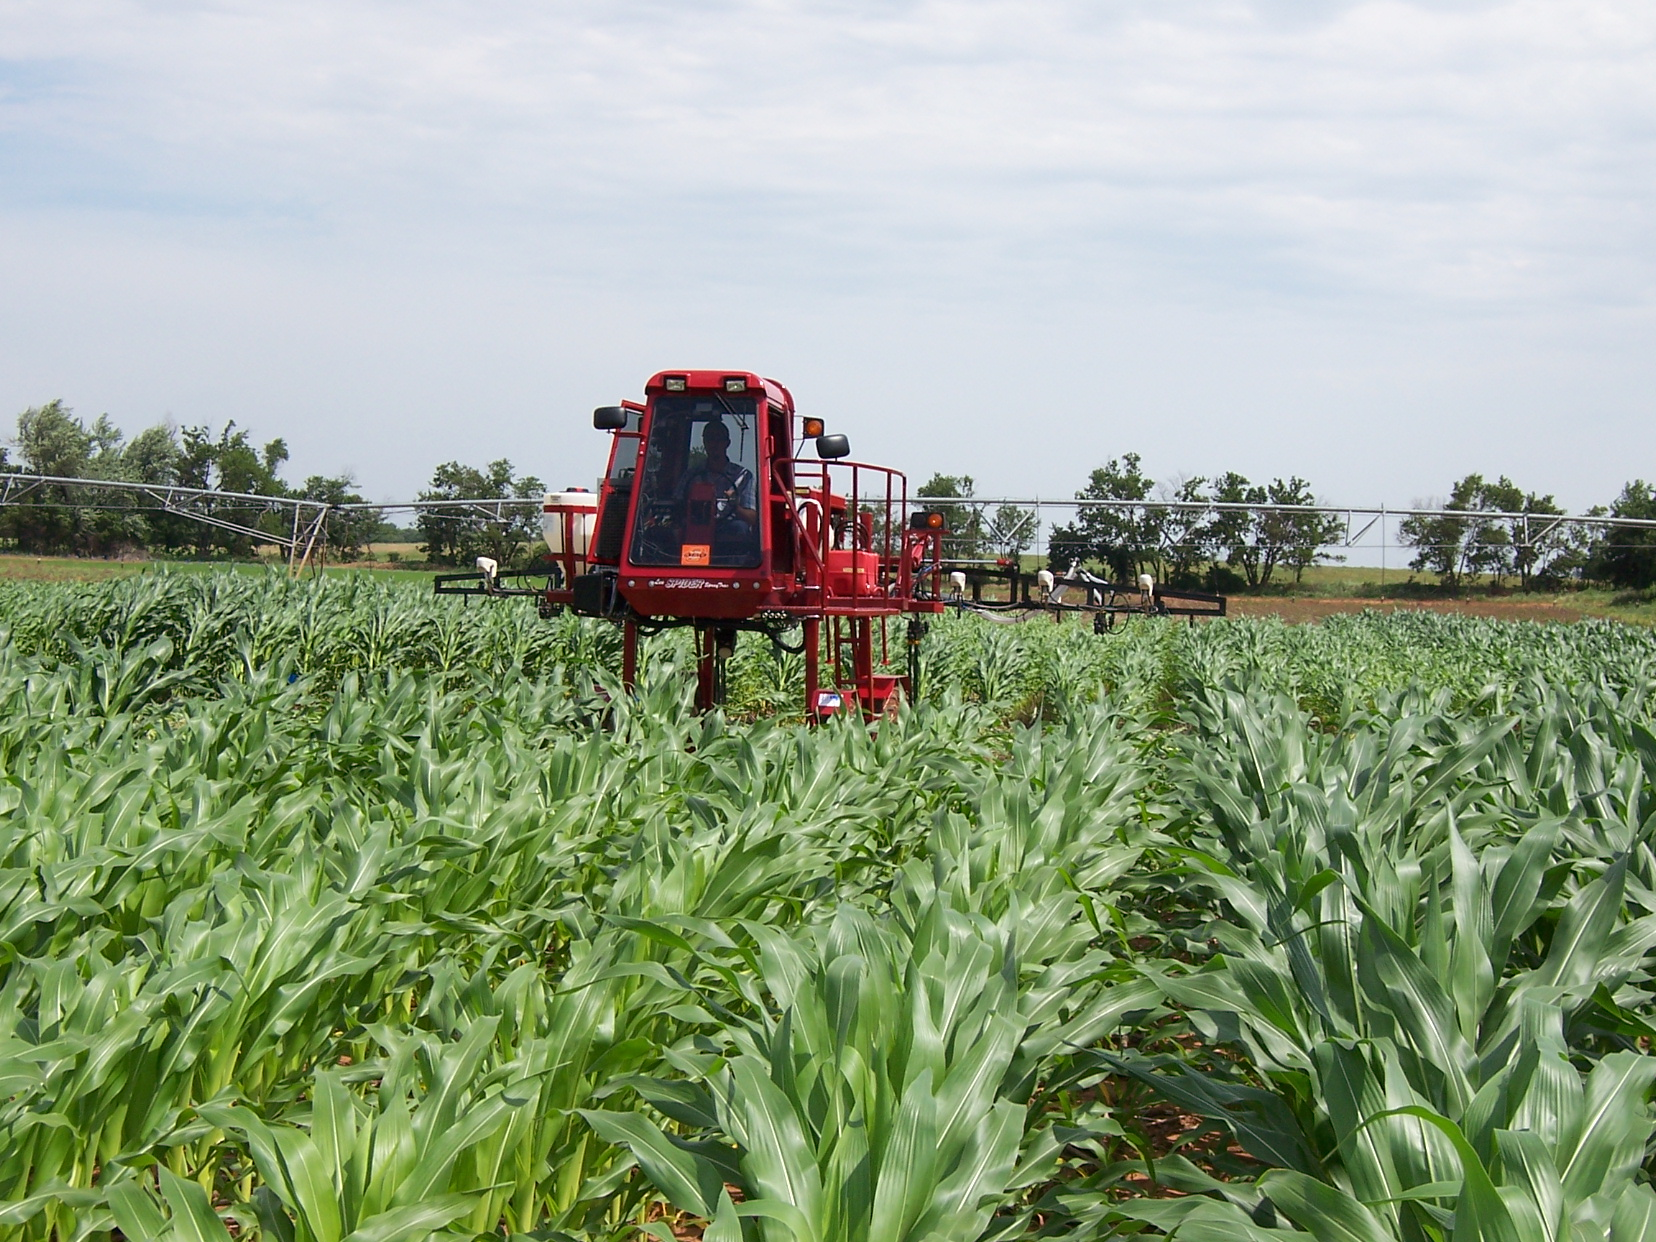 Precision Agriculture Equipment Developed At Oklahoma